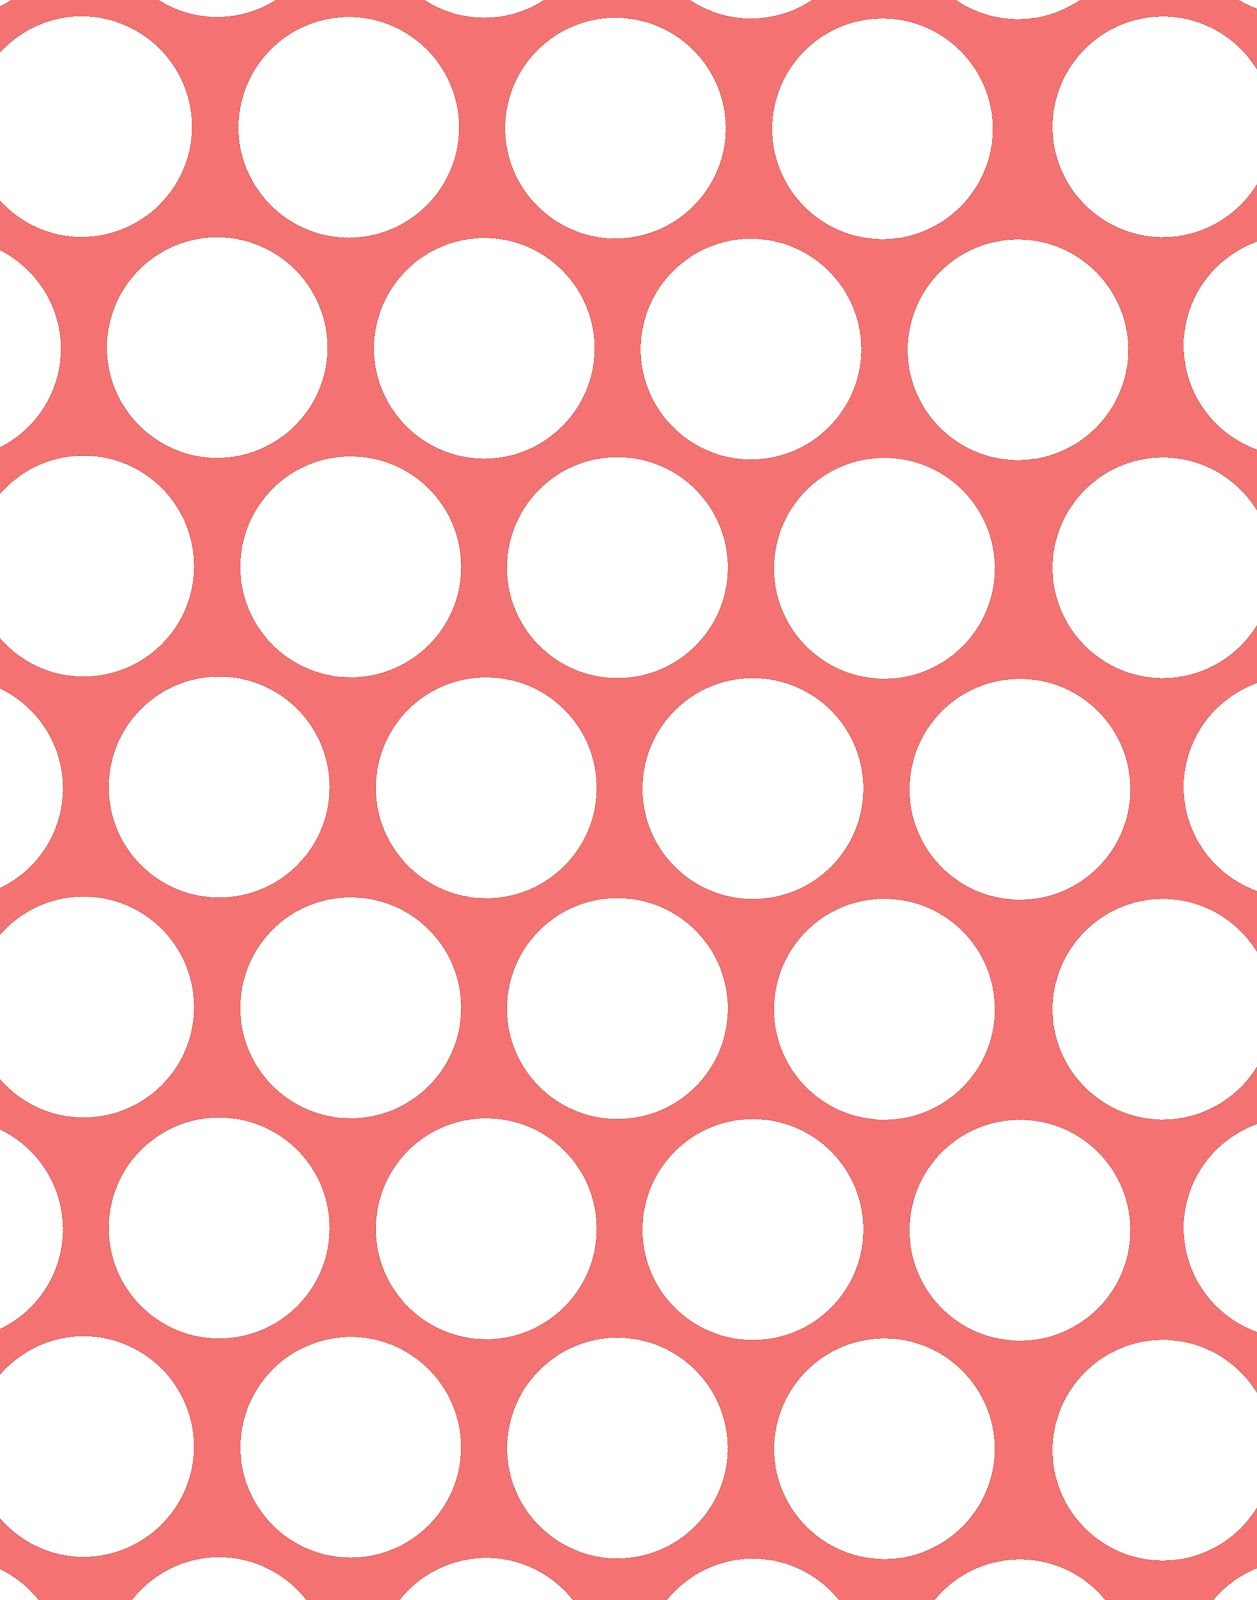 doodlecraft freebie digi patterns backgrounds polka dots